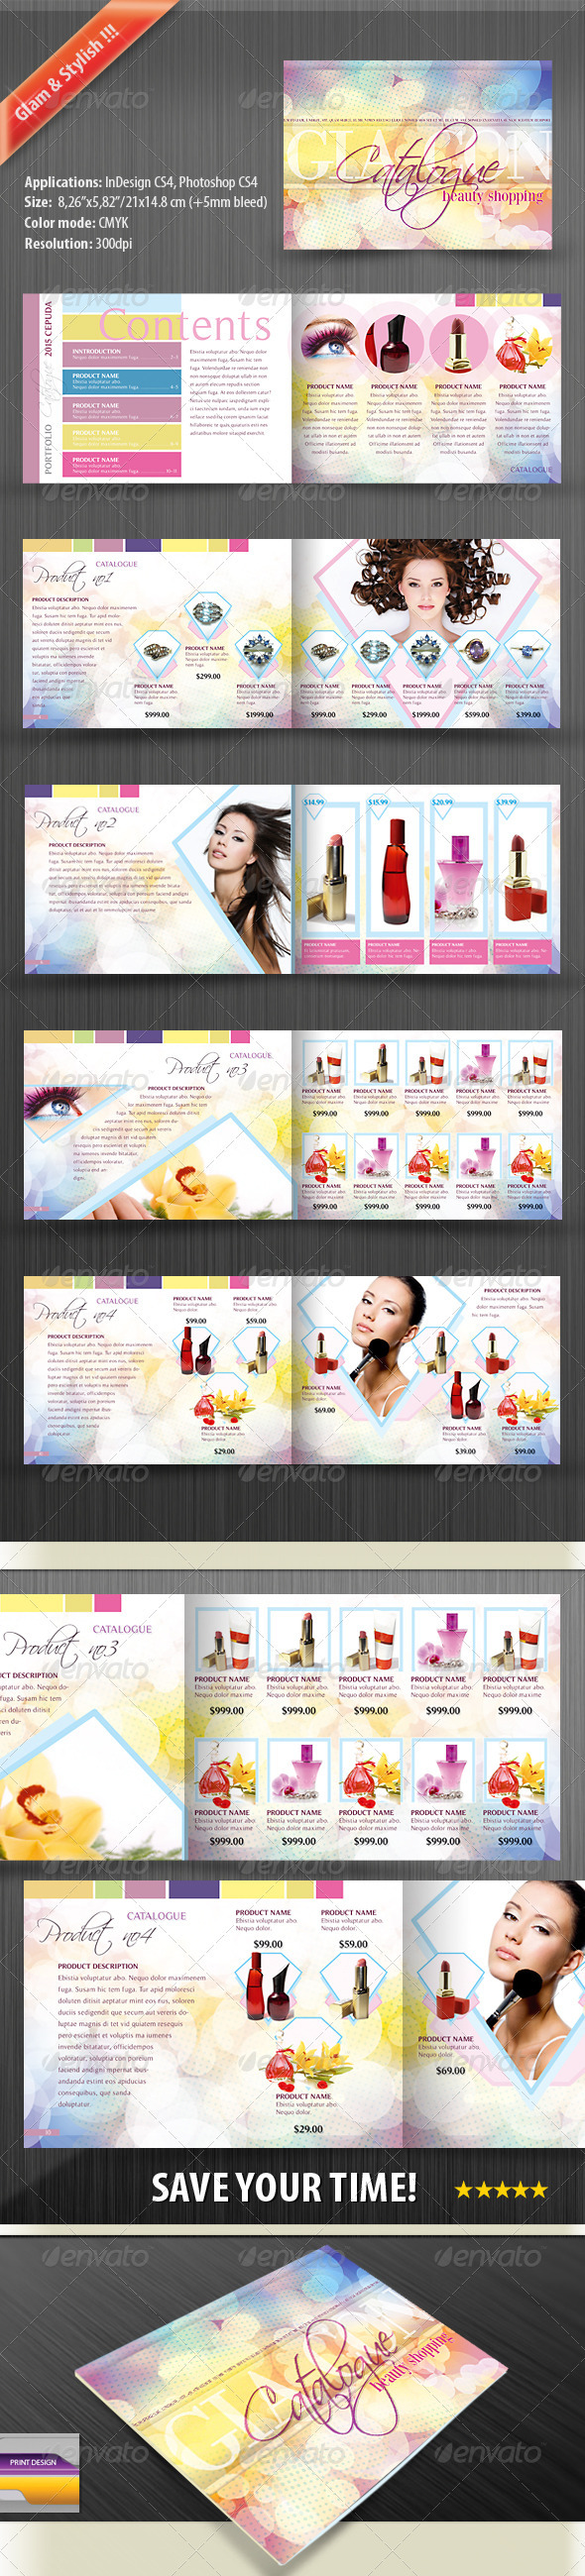 Product Catalog for Women - Catalogs Brochures